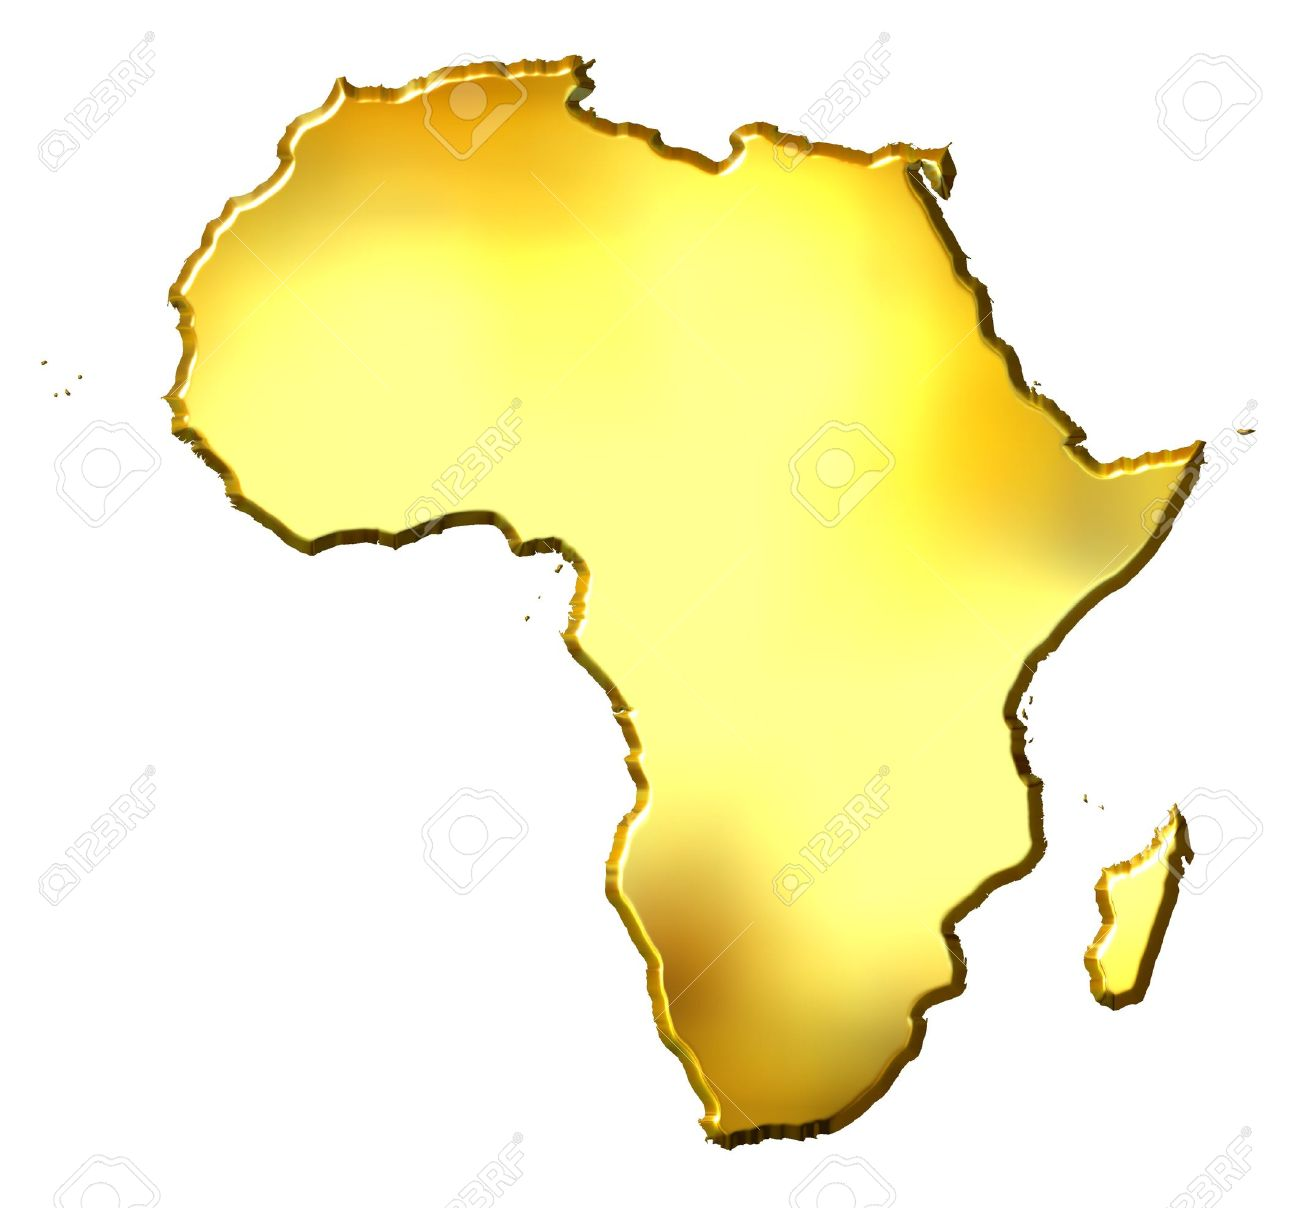 Map Of Africa 3d.Africa 3d Golden Map Stock Photo Picture And Royalty Free Image